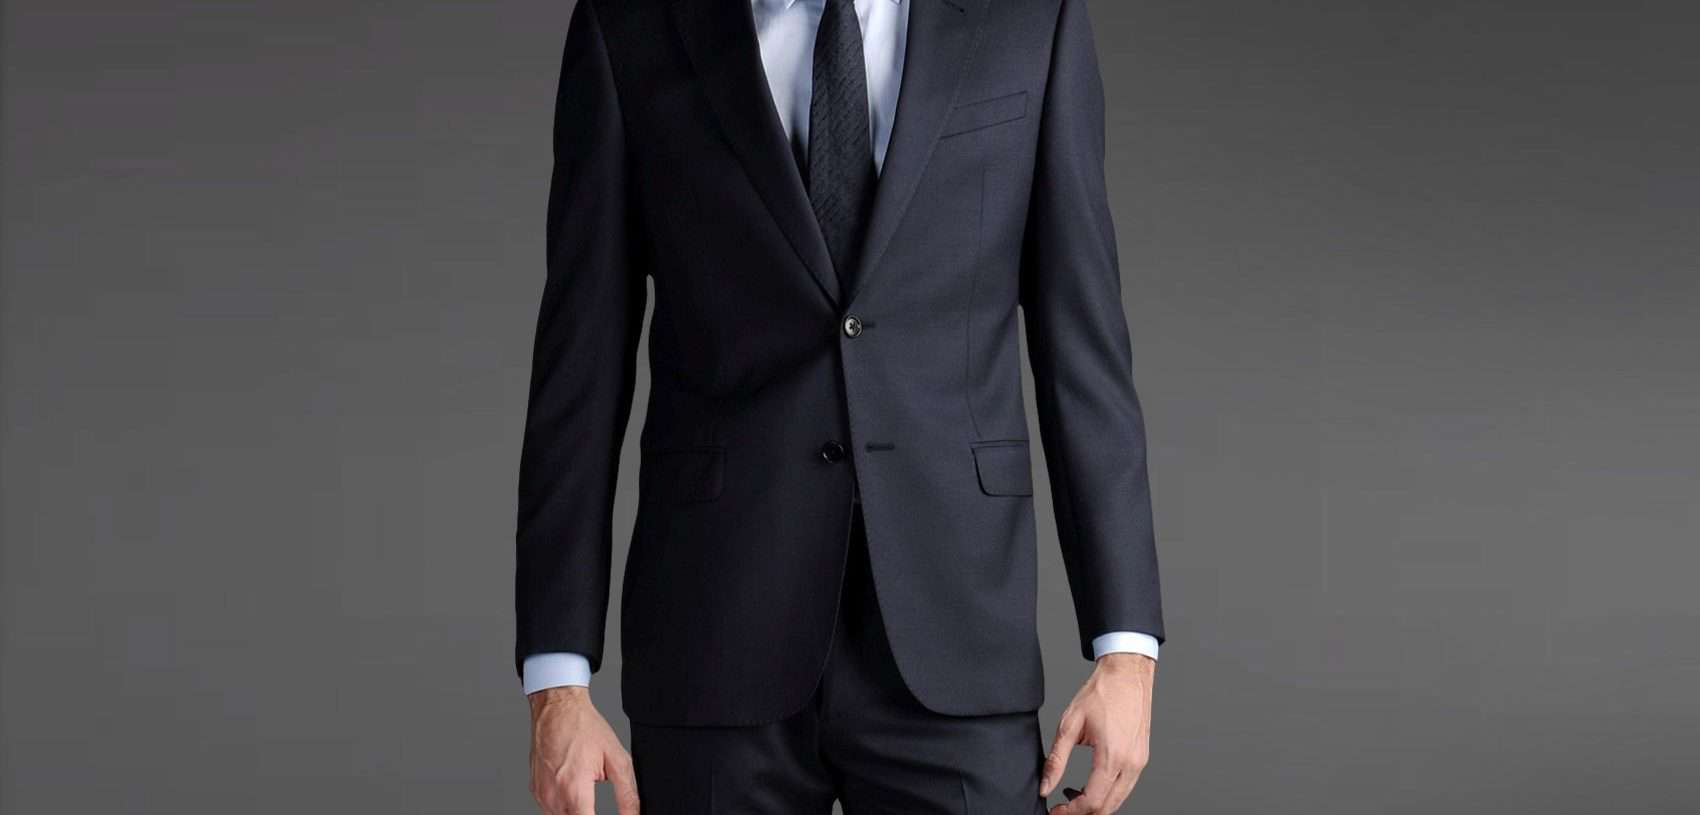 Two Button – types of suits